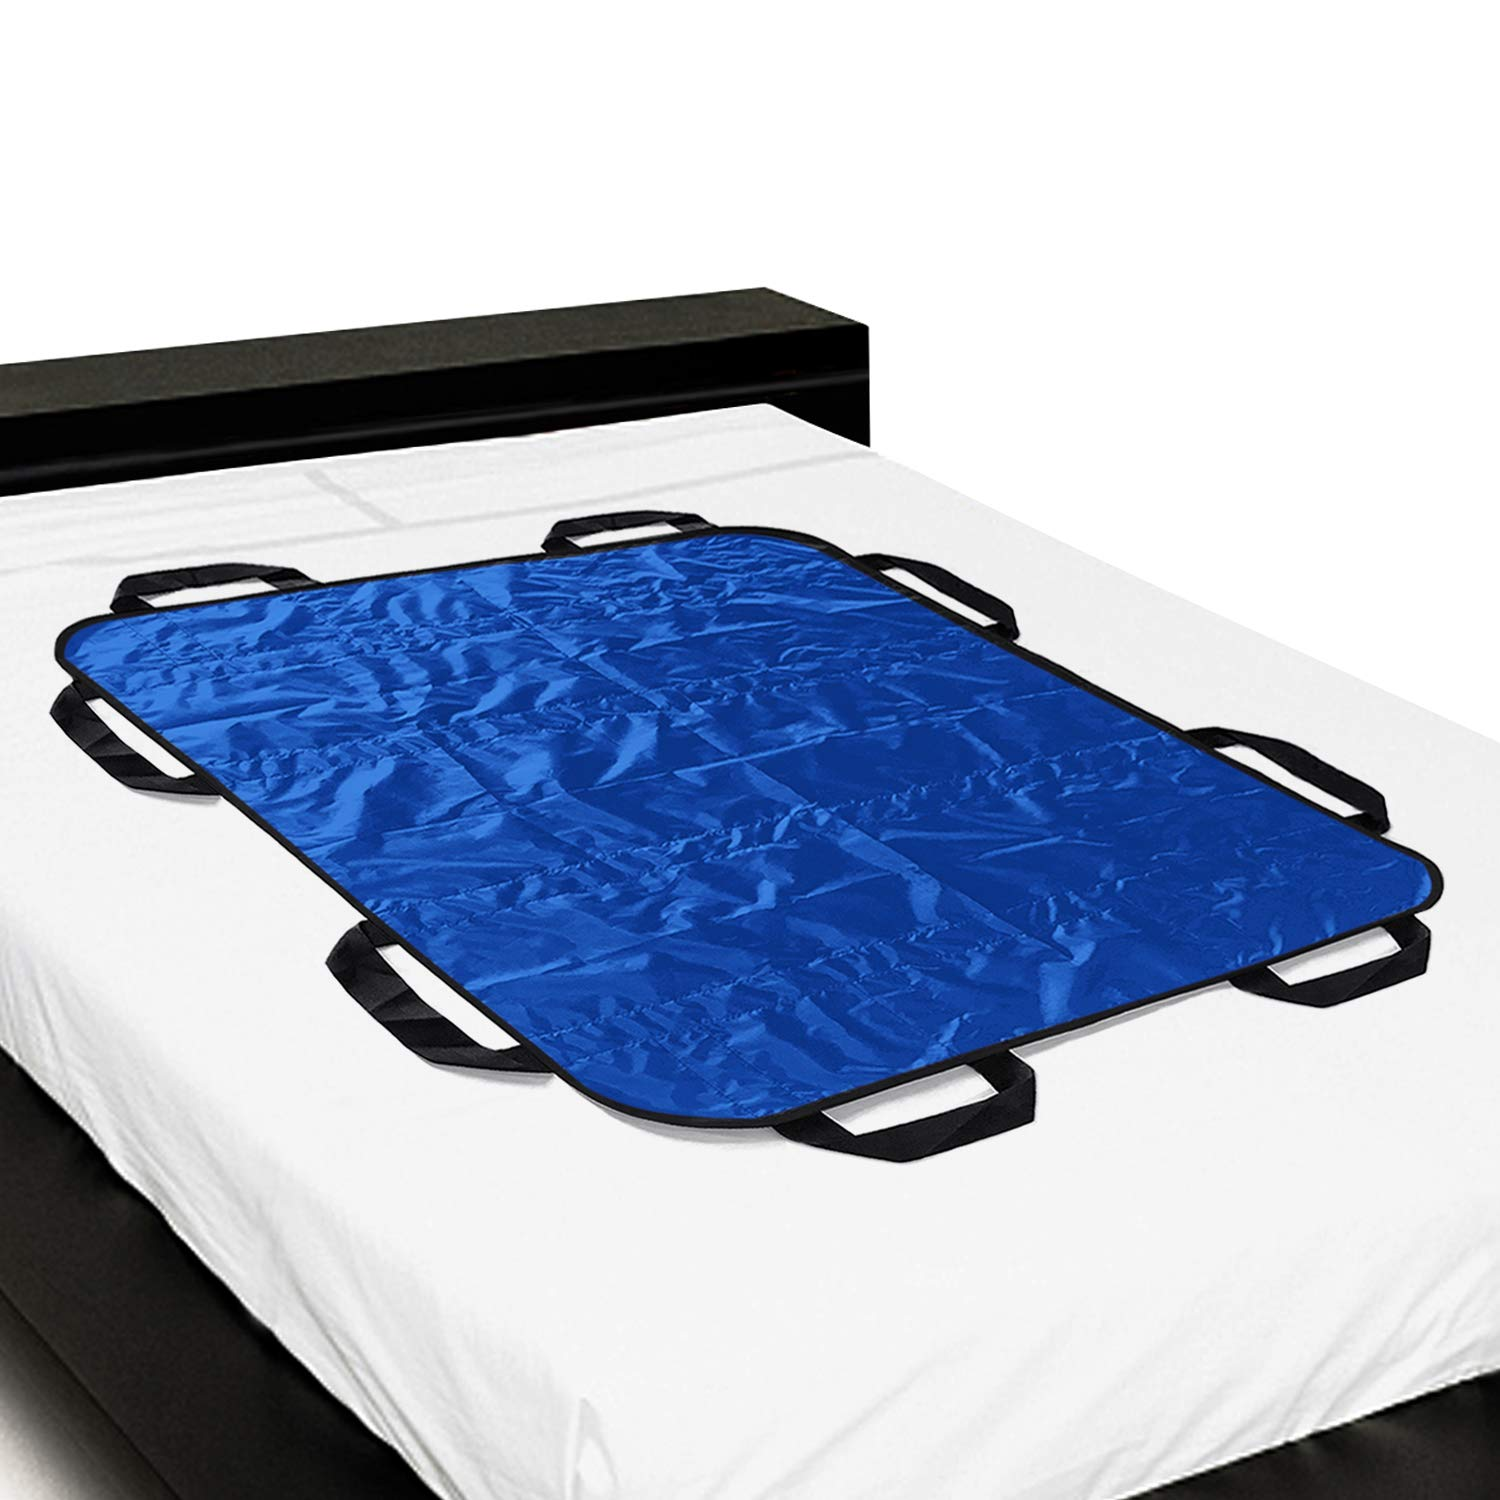 """Multipurpose 48"""" x 40"""" Positioning Bed Pad with Reinforced Handles by ZHEEYI - Reusable & Washable Patient Sheet for Turning, Lifting & Repositioning - Double-Sided Nylon Fabric, Blue by ZHEEYI (Image #1)"""